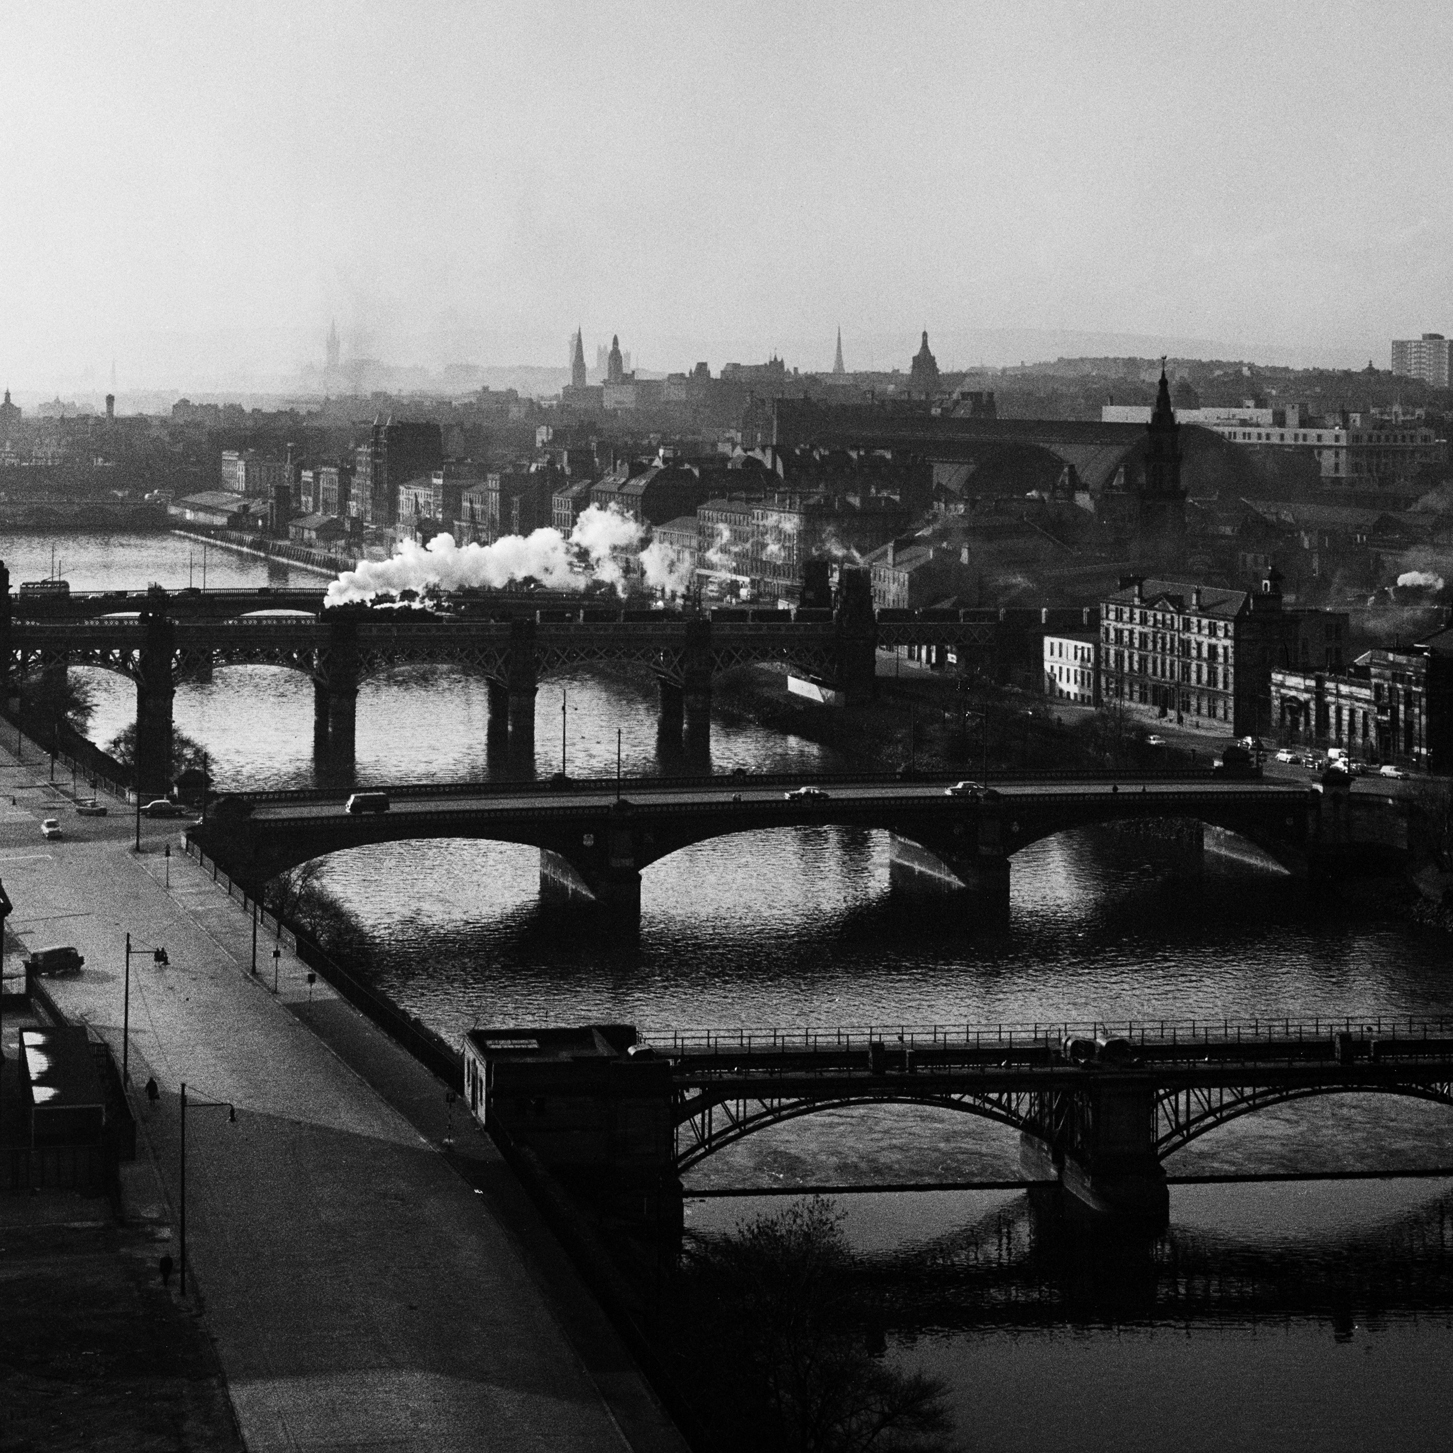 Image of Bridges over the River Clyde (1963) by Oscar Marzaroli